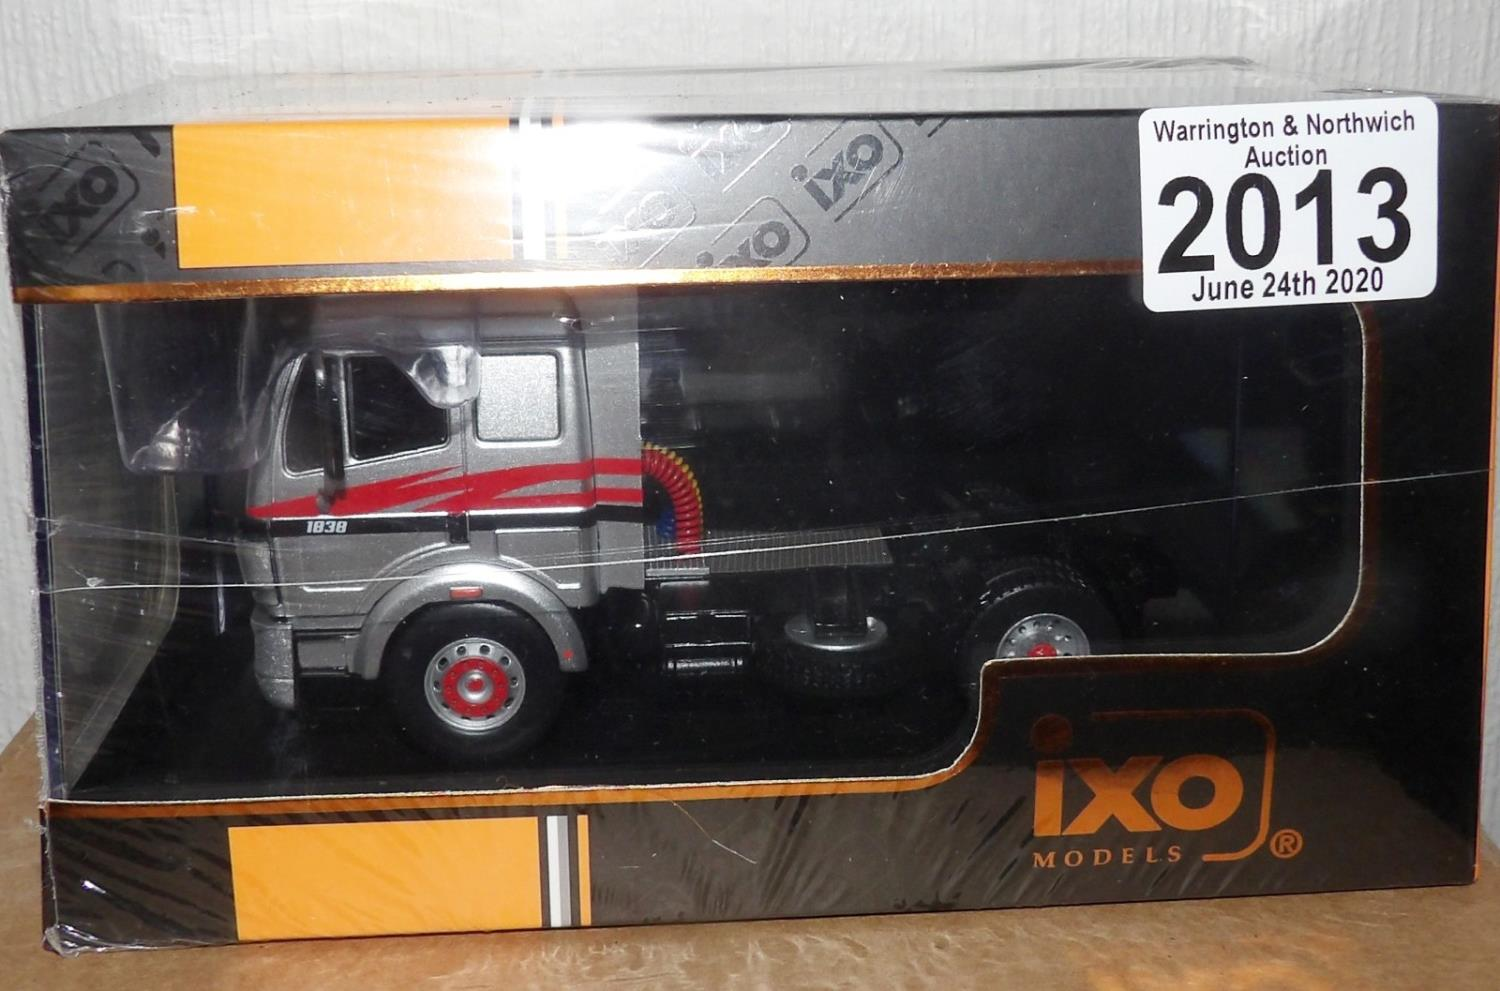 Lot 2013 - IXO 1.43 Scale Mercedes Benz SK 11 1838 1994. P&P Group 1 (£14+VAT for the first lot and £1+VAT